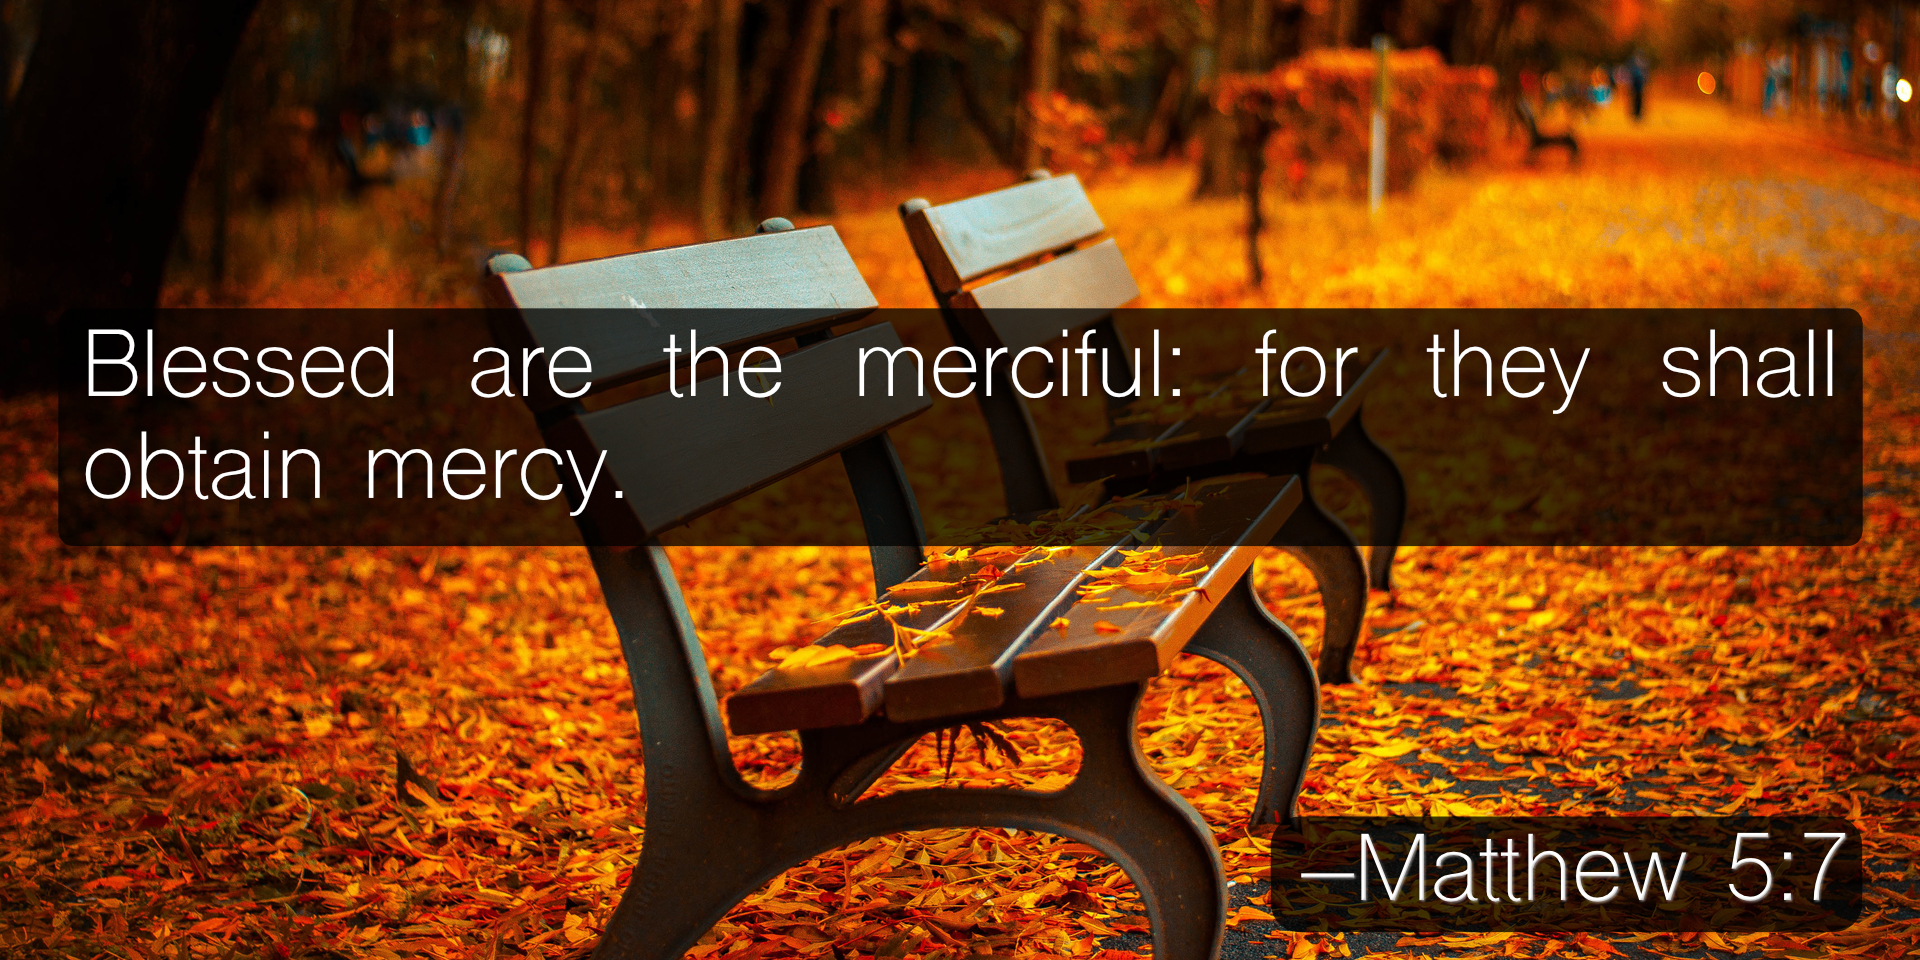 Blessed are the merciful: for they shall obtain mercy. –Matthew 5:7